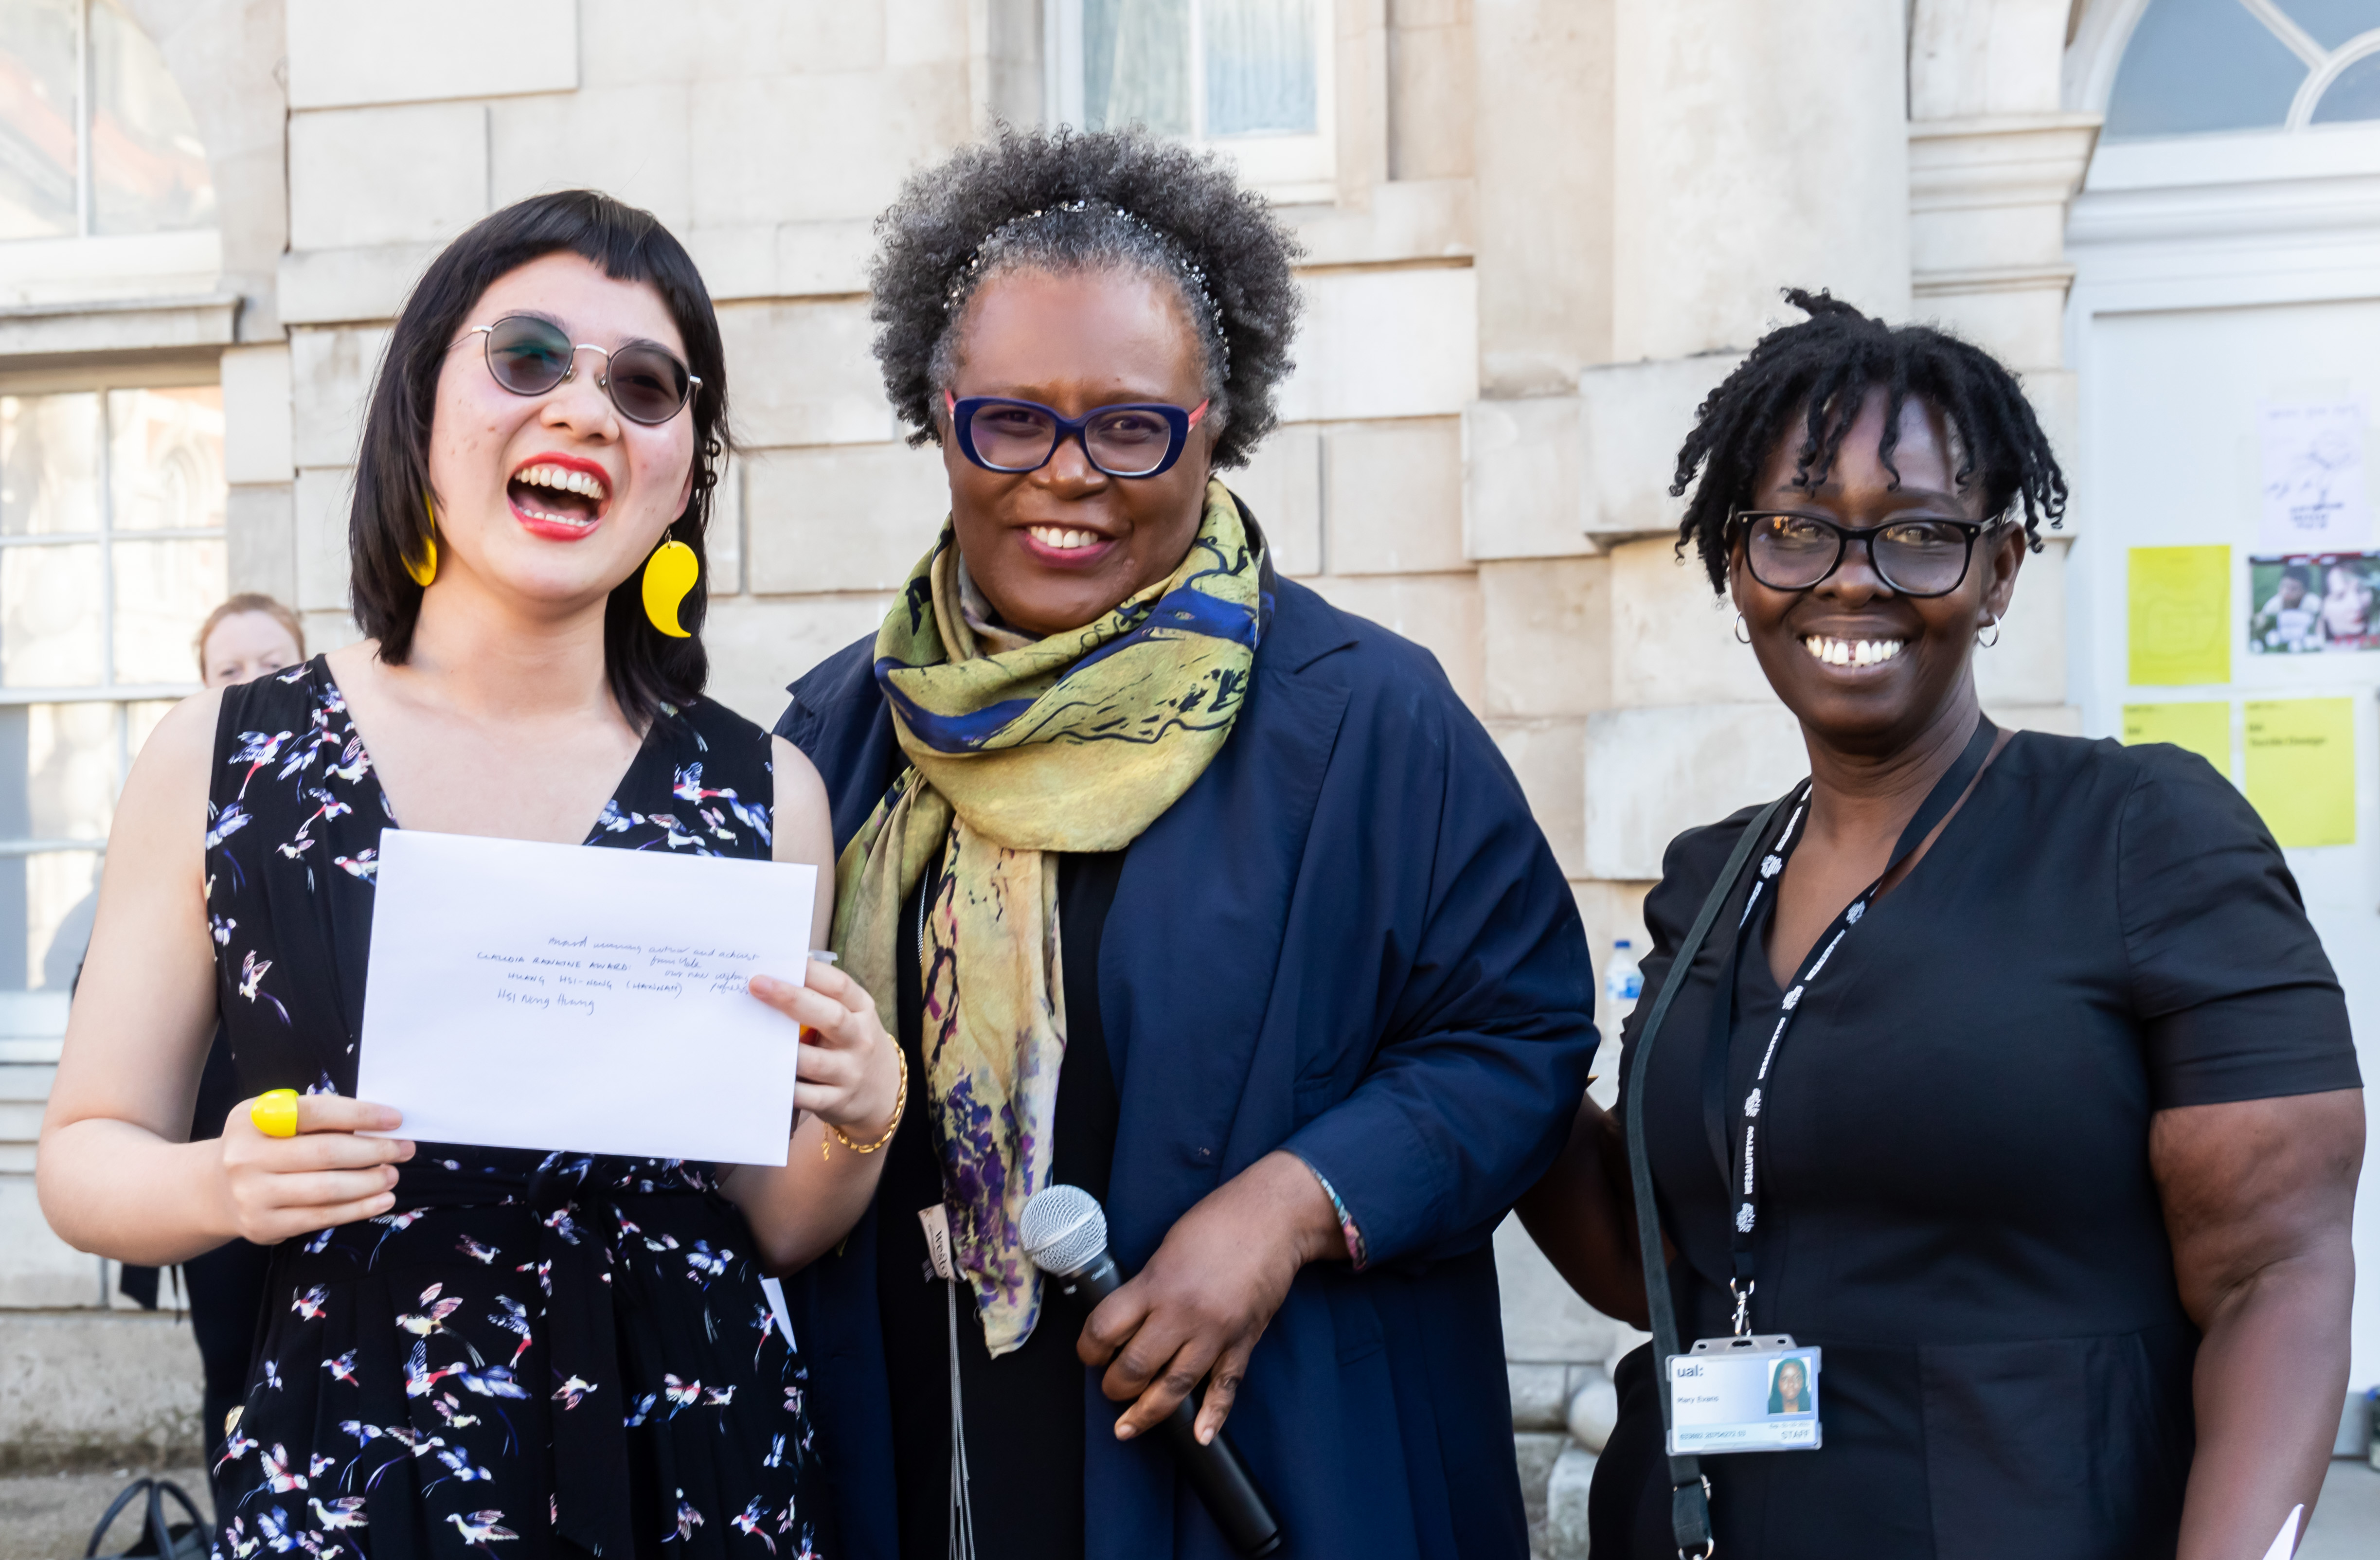 Recipient of the Claudia Rankine Prize Hsi-Nong Huang with Claudia Rankine and Mary Evans (BA Fine Art Course Leader, Chelsea)